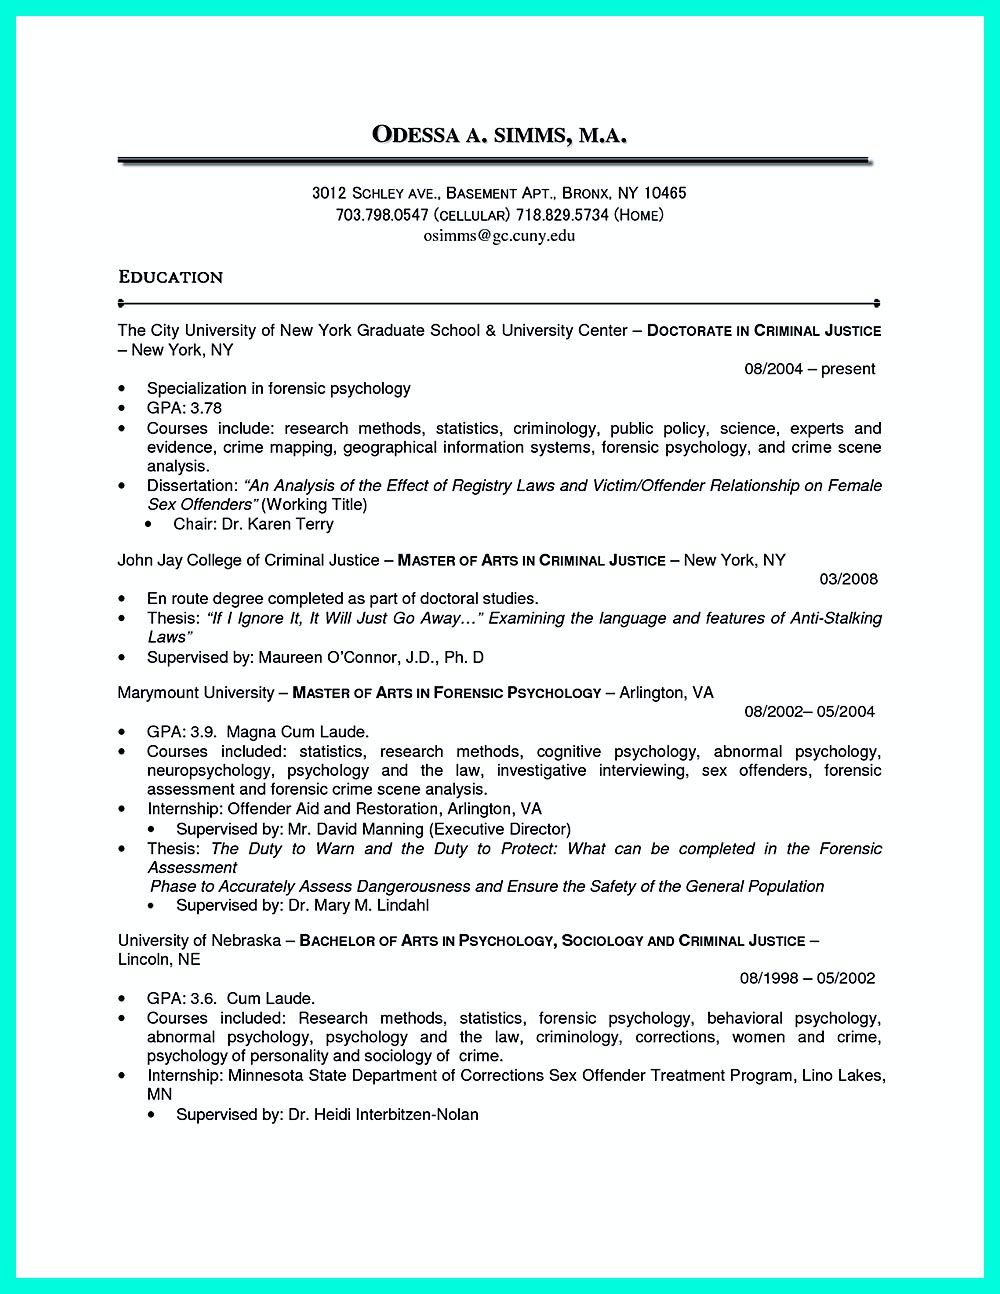 Best Criminal Justice Resume Collection From Professionals Chronological Resume Resume Examples Criminal Justice